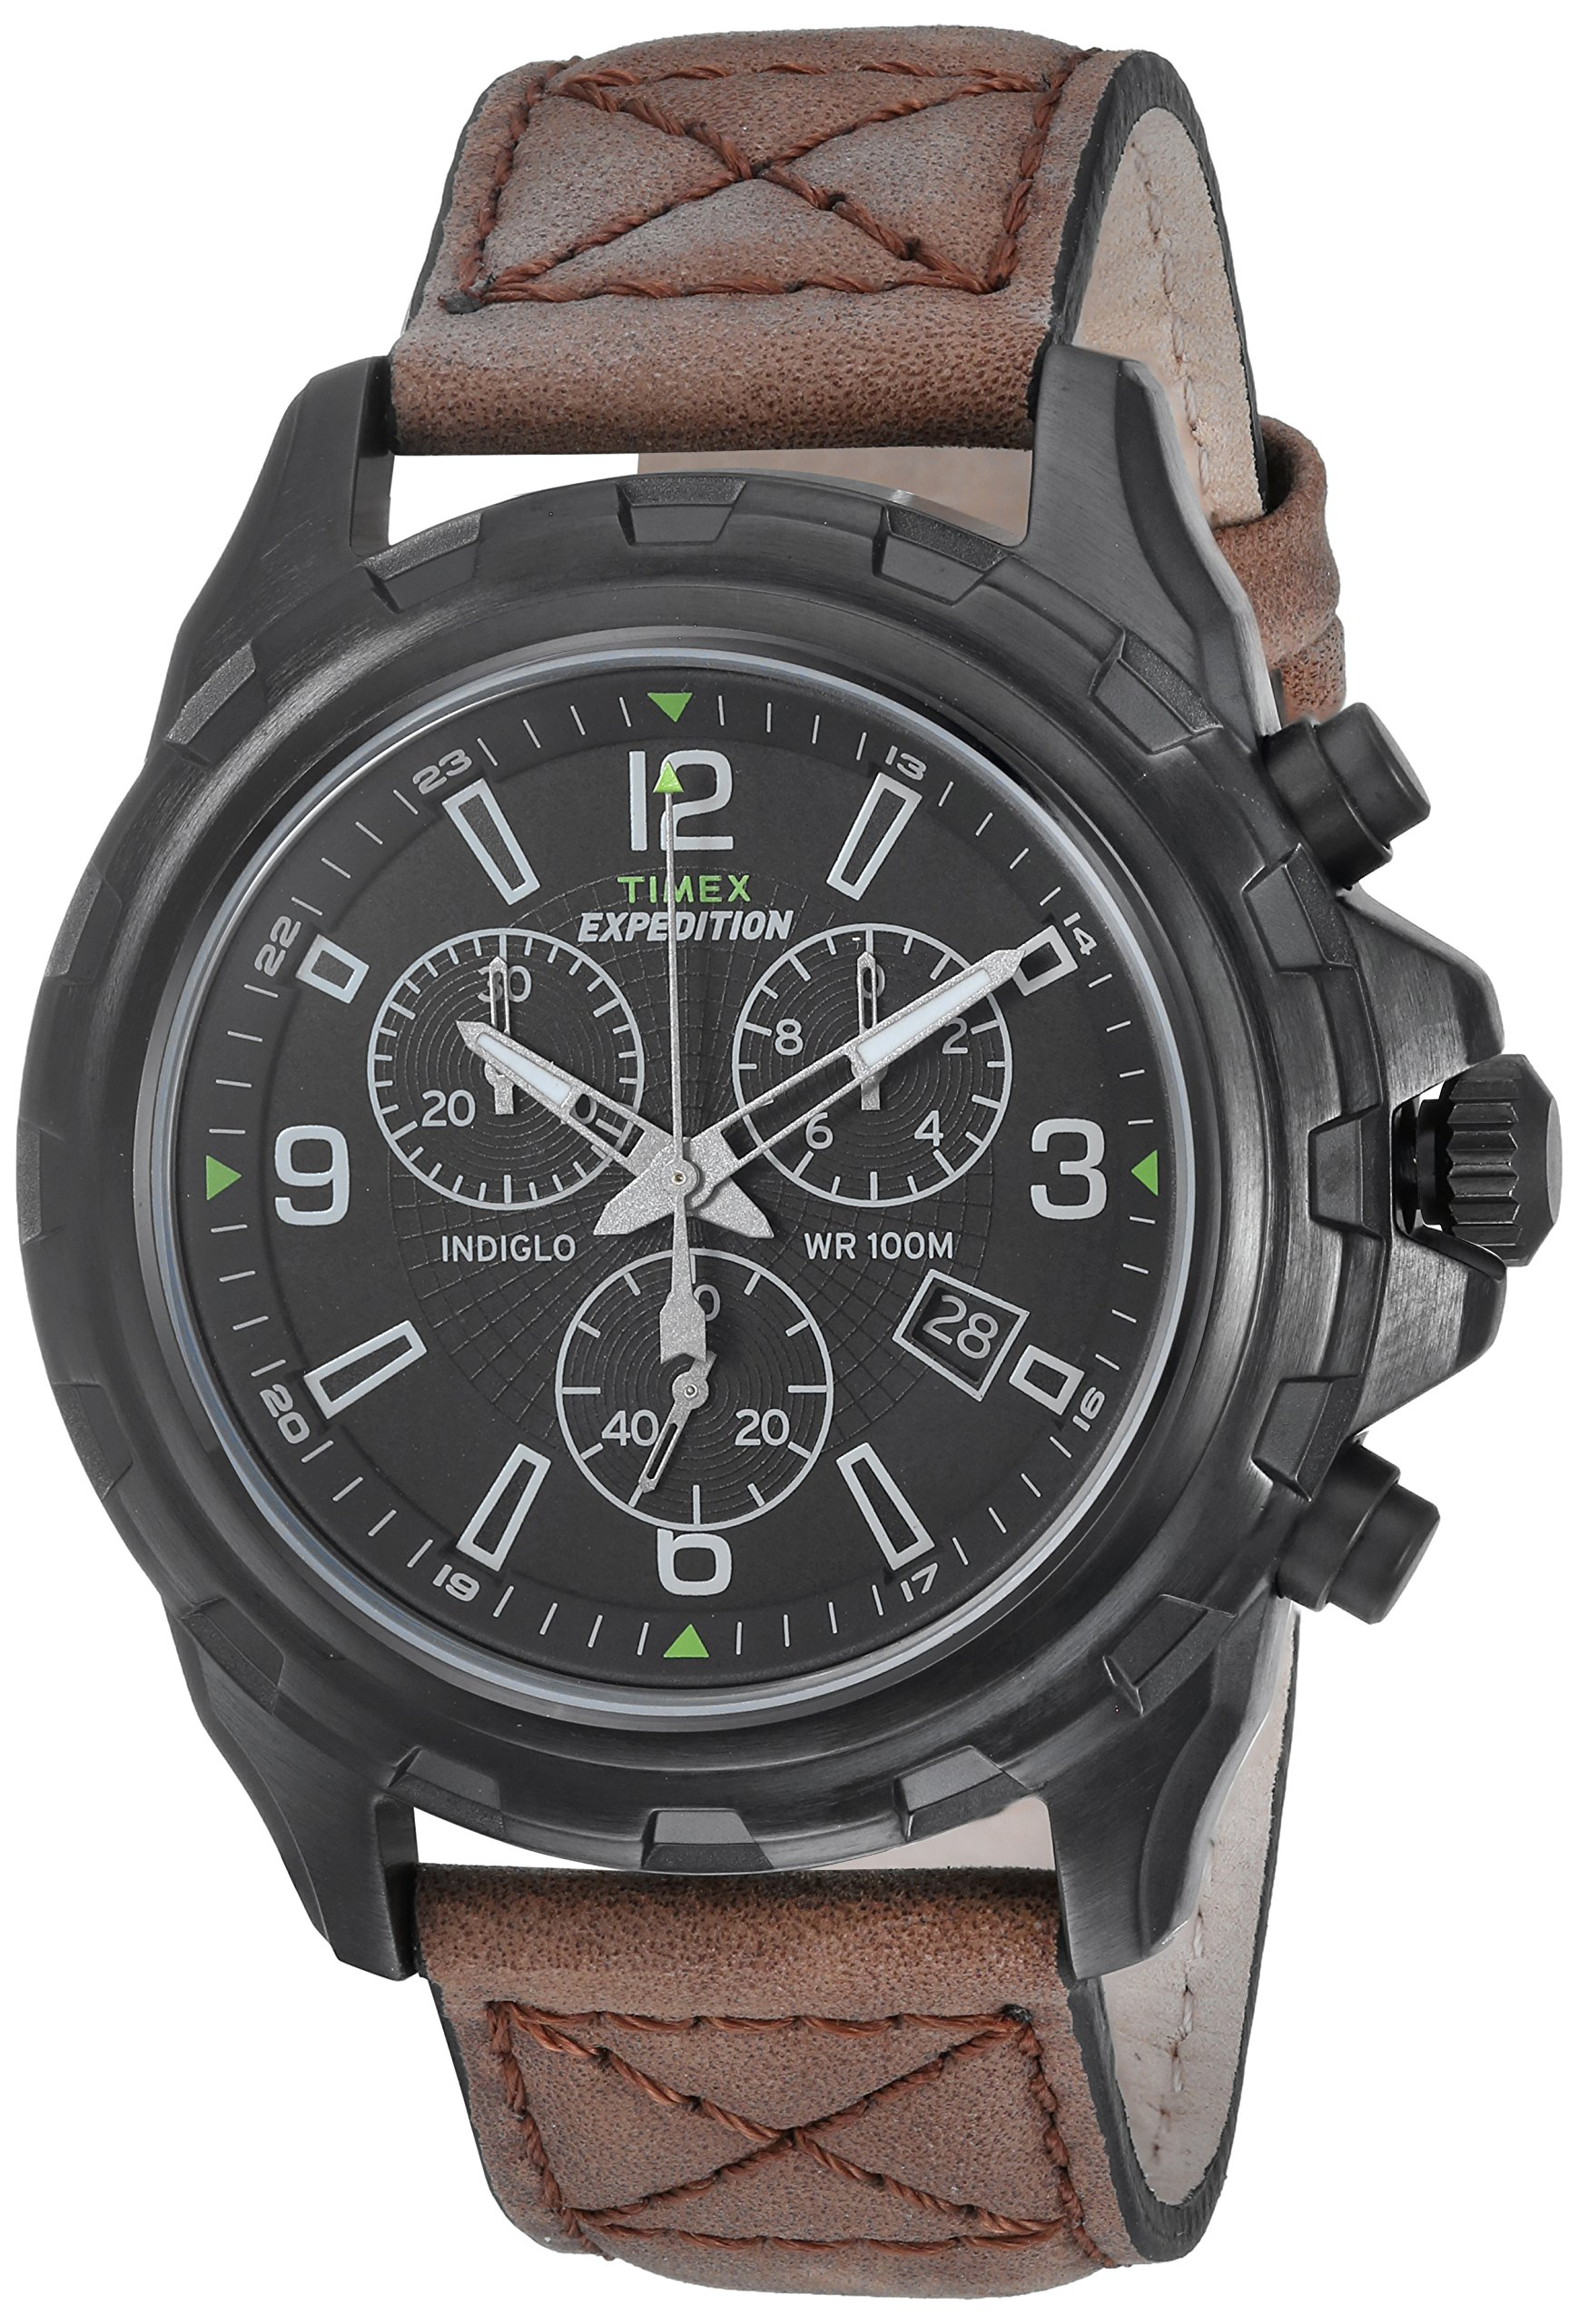 Timex Men's T49986 Expedition Rugged Chronograph Brown/Black Leather Strap Watch by Timex